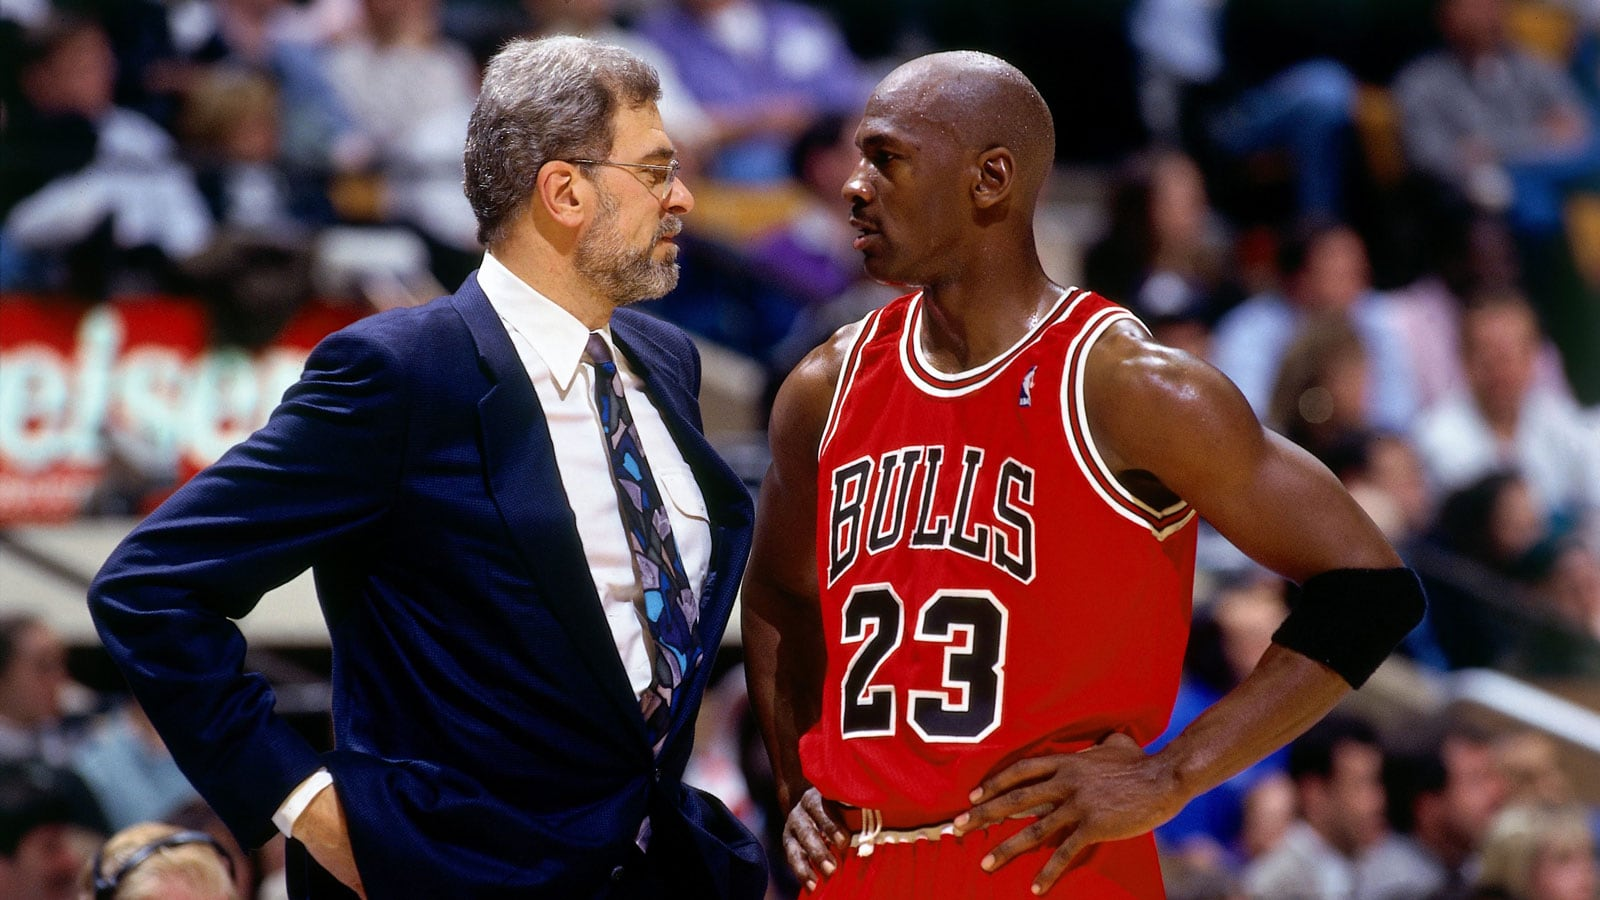 Michael Jordan #23 of the Chicago Bulls discusses strategy with head coach Phil Jackson in Game Six of the 1996 NBA Finals against the Seattle SuperSonics at the United Center on June 16, 1996 in Chicago Iillinois.